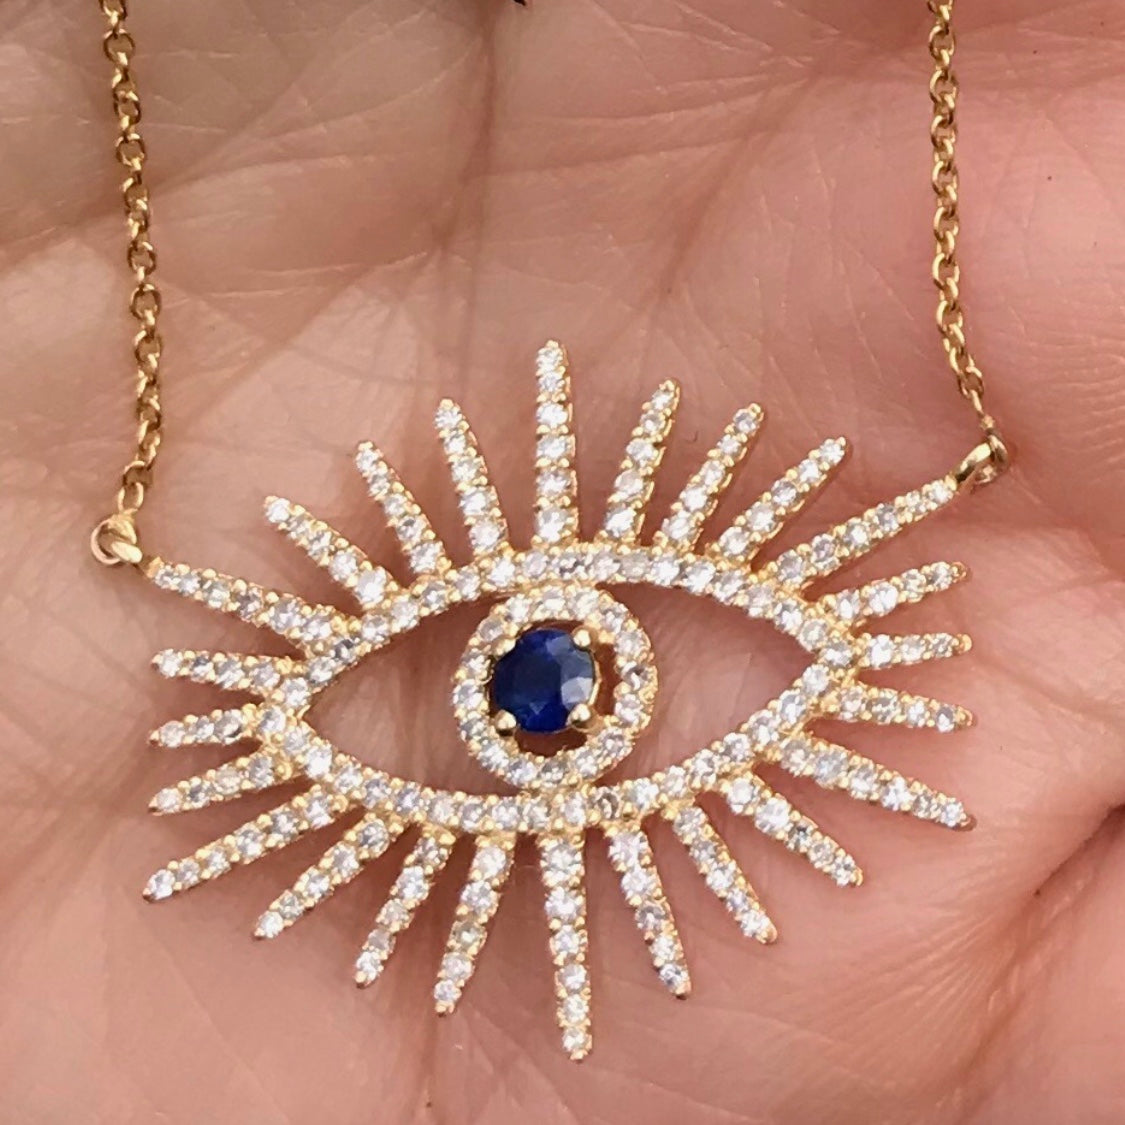 Spike Lash Diamond Sapphire Eye Necklace